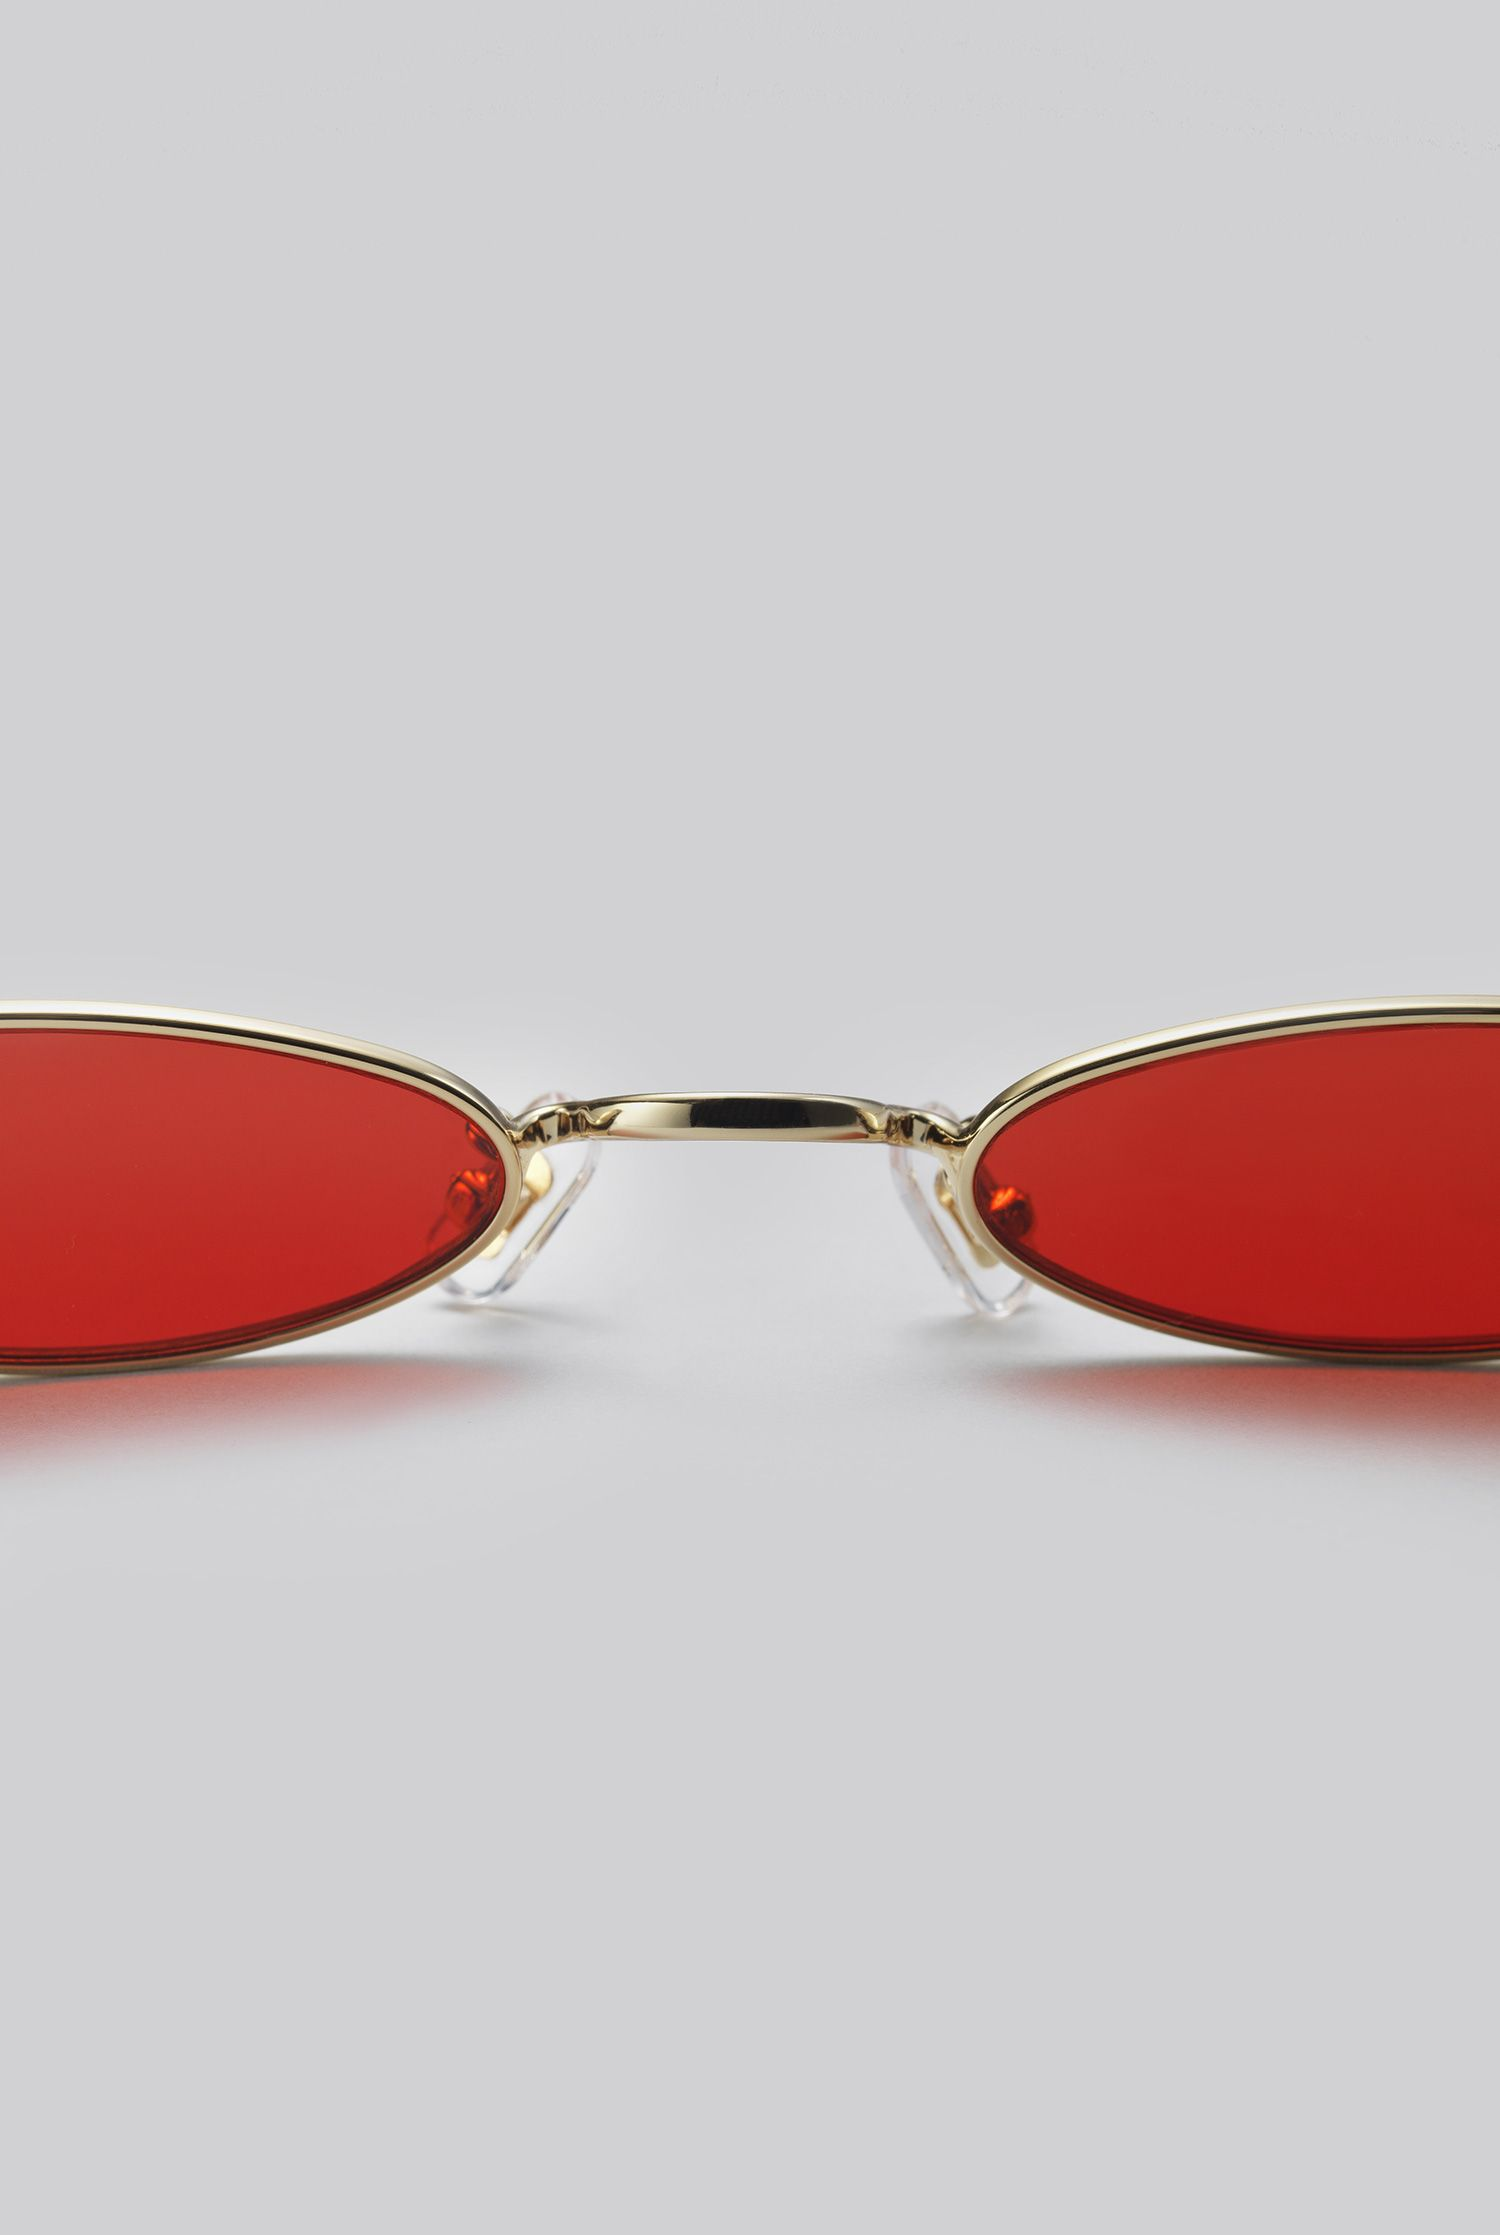 c7c0bc0682 GENTLE MONSTER 2018 Sunglasses VECTOR 03(RED) Stainless and monel frame in  gold